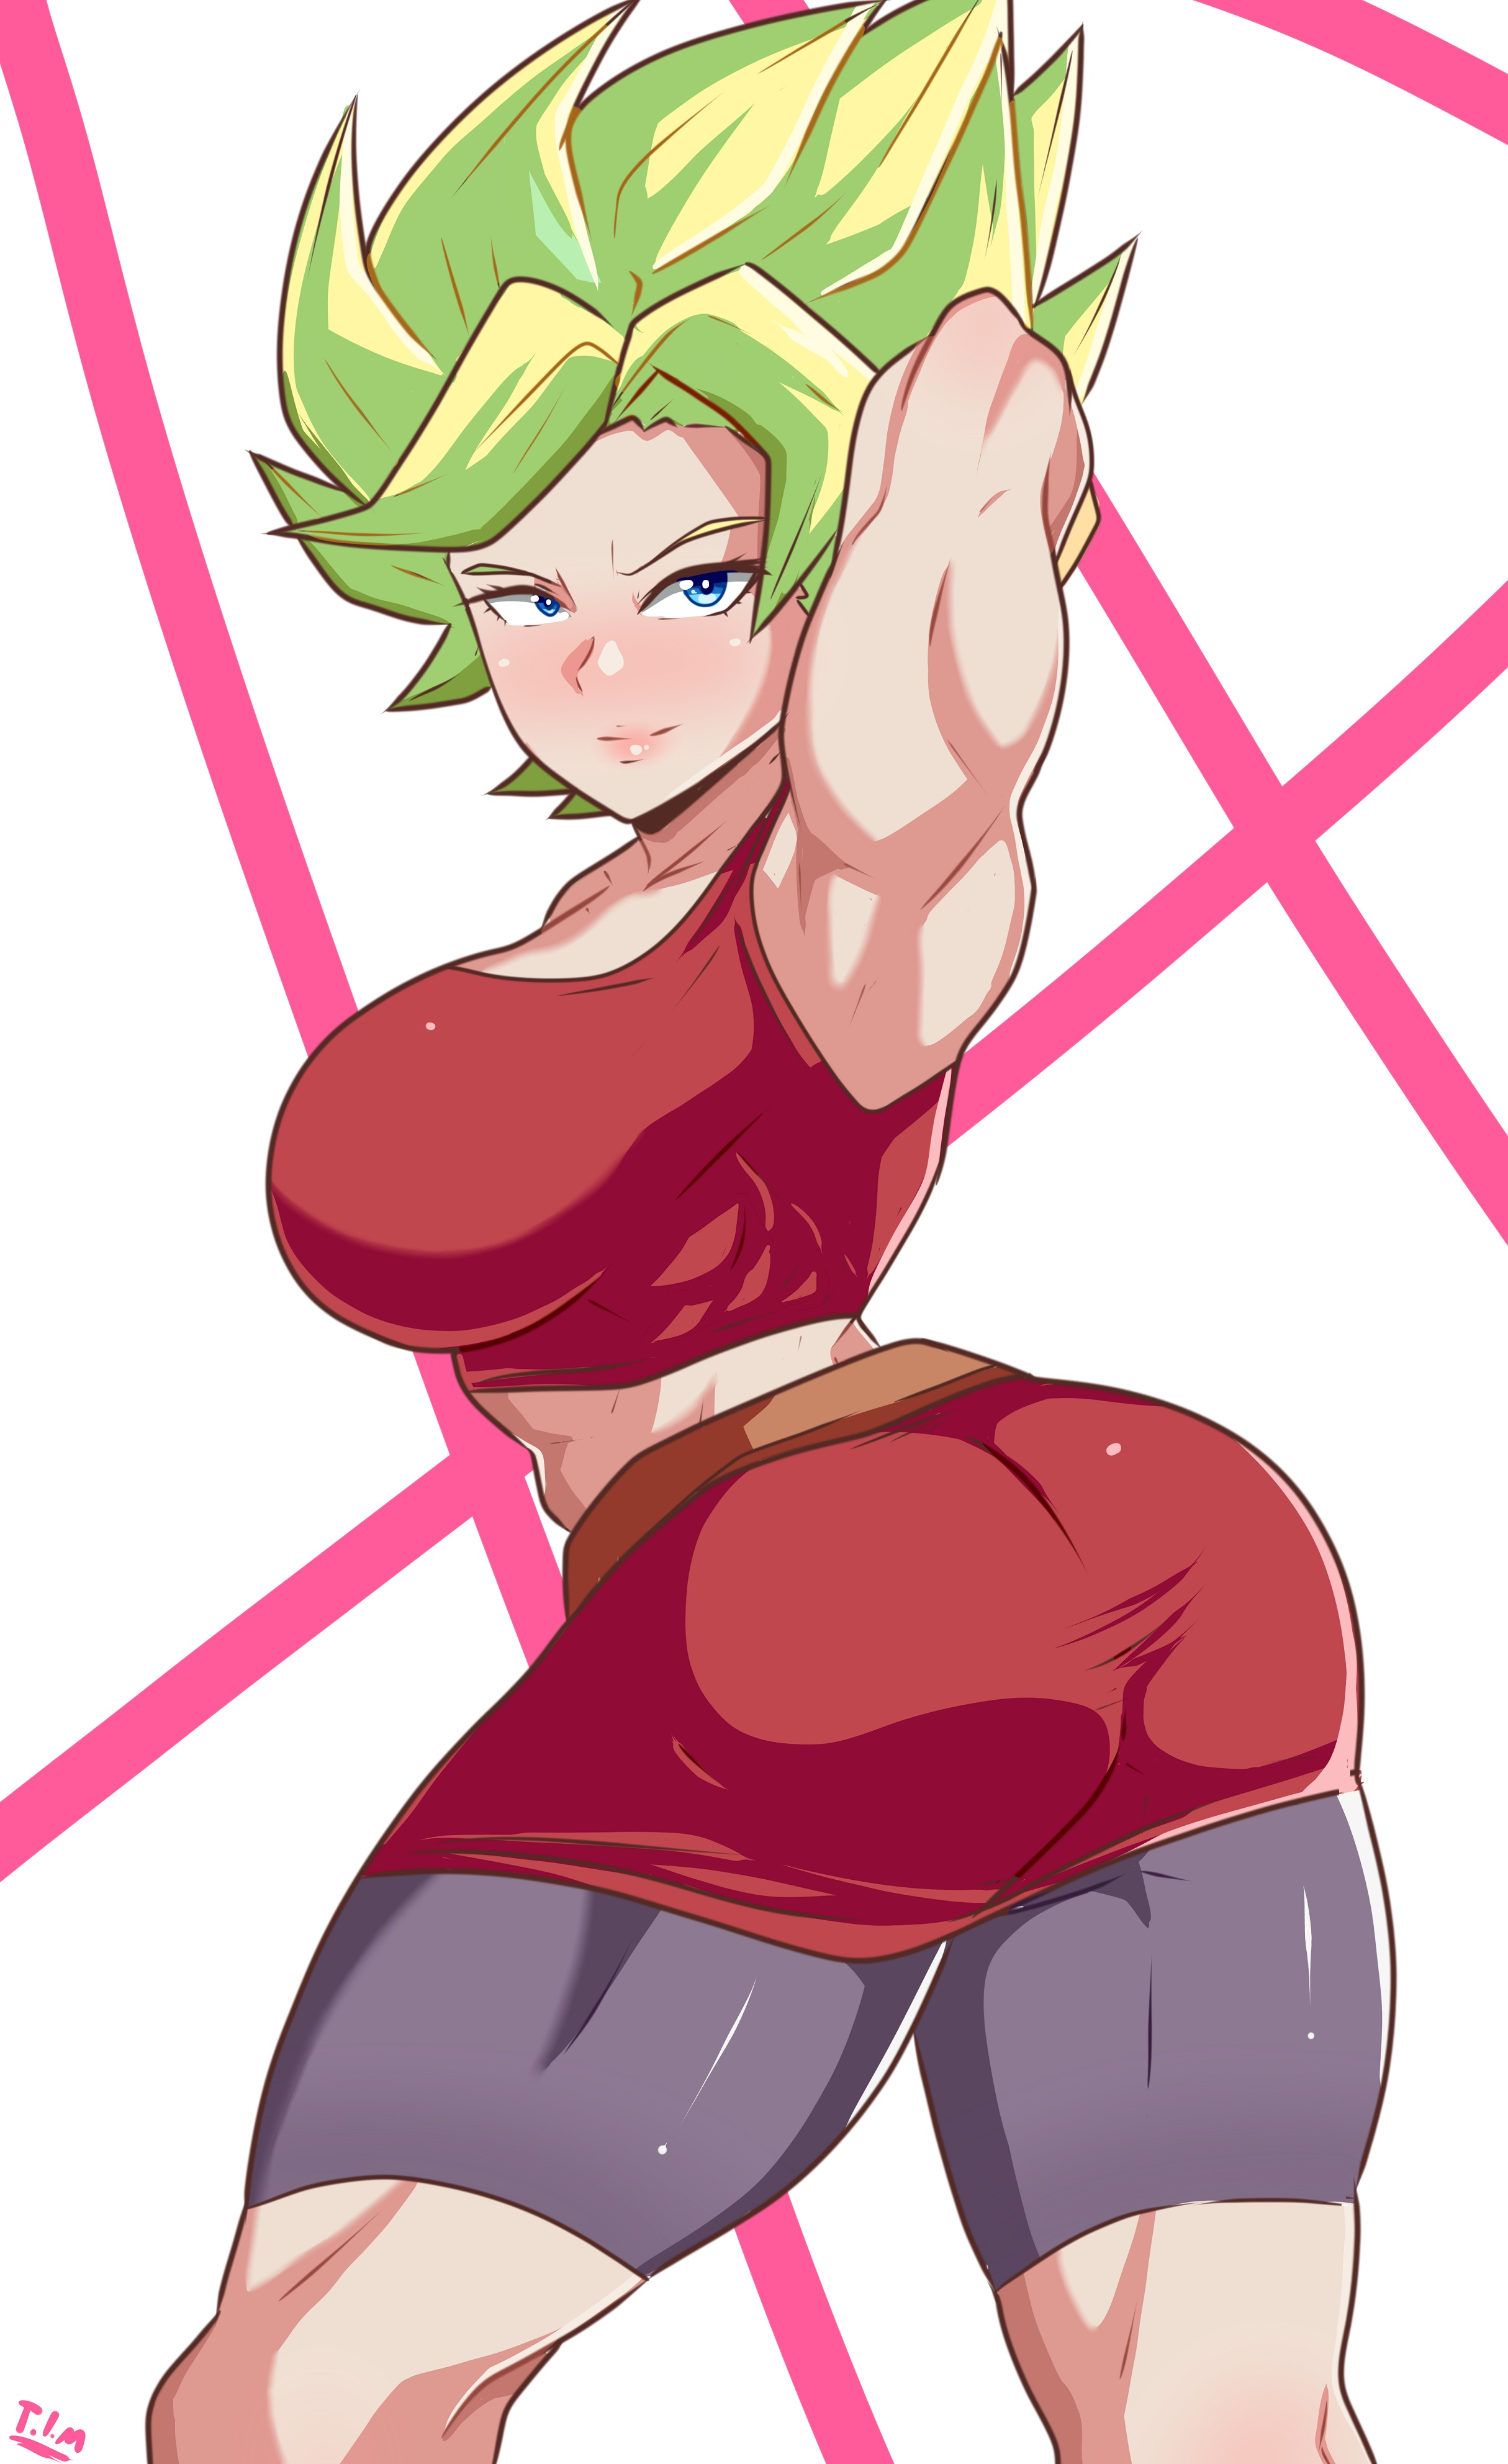 Commission made for @kale_dragonball of Kale by